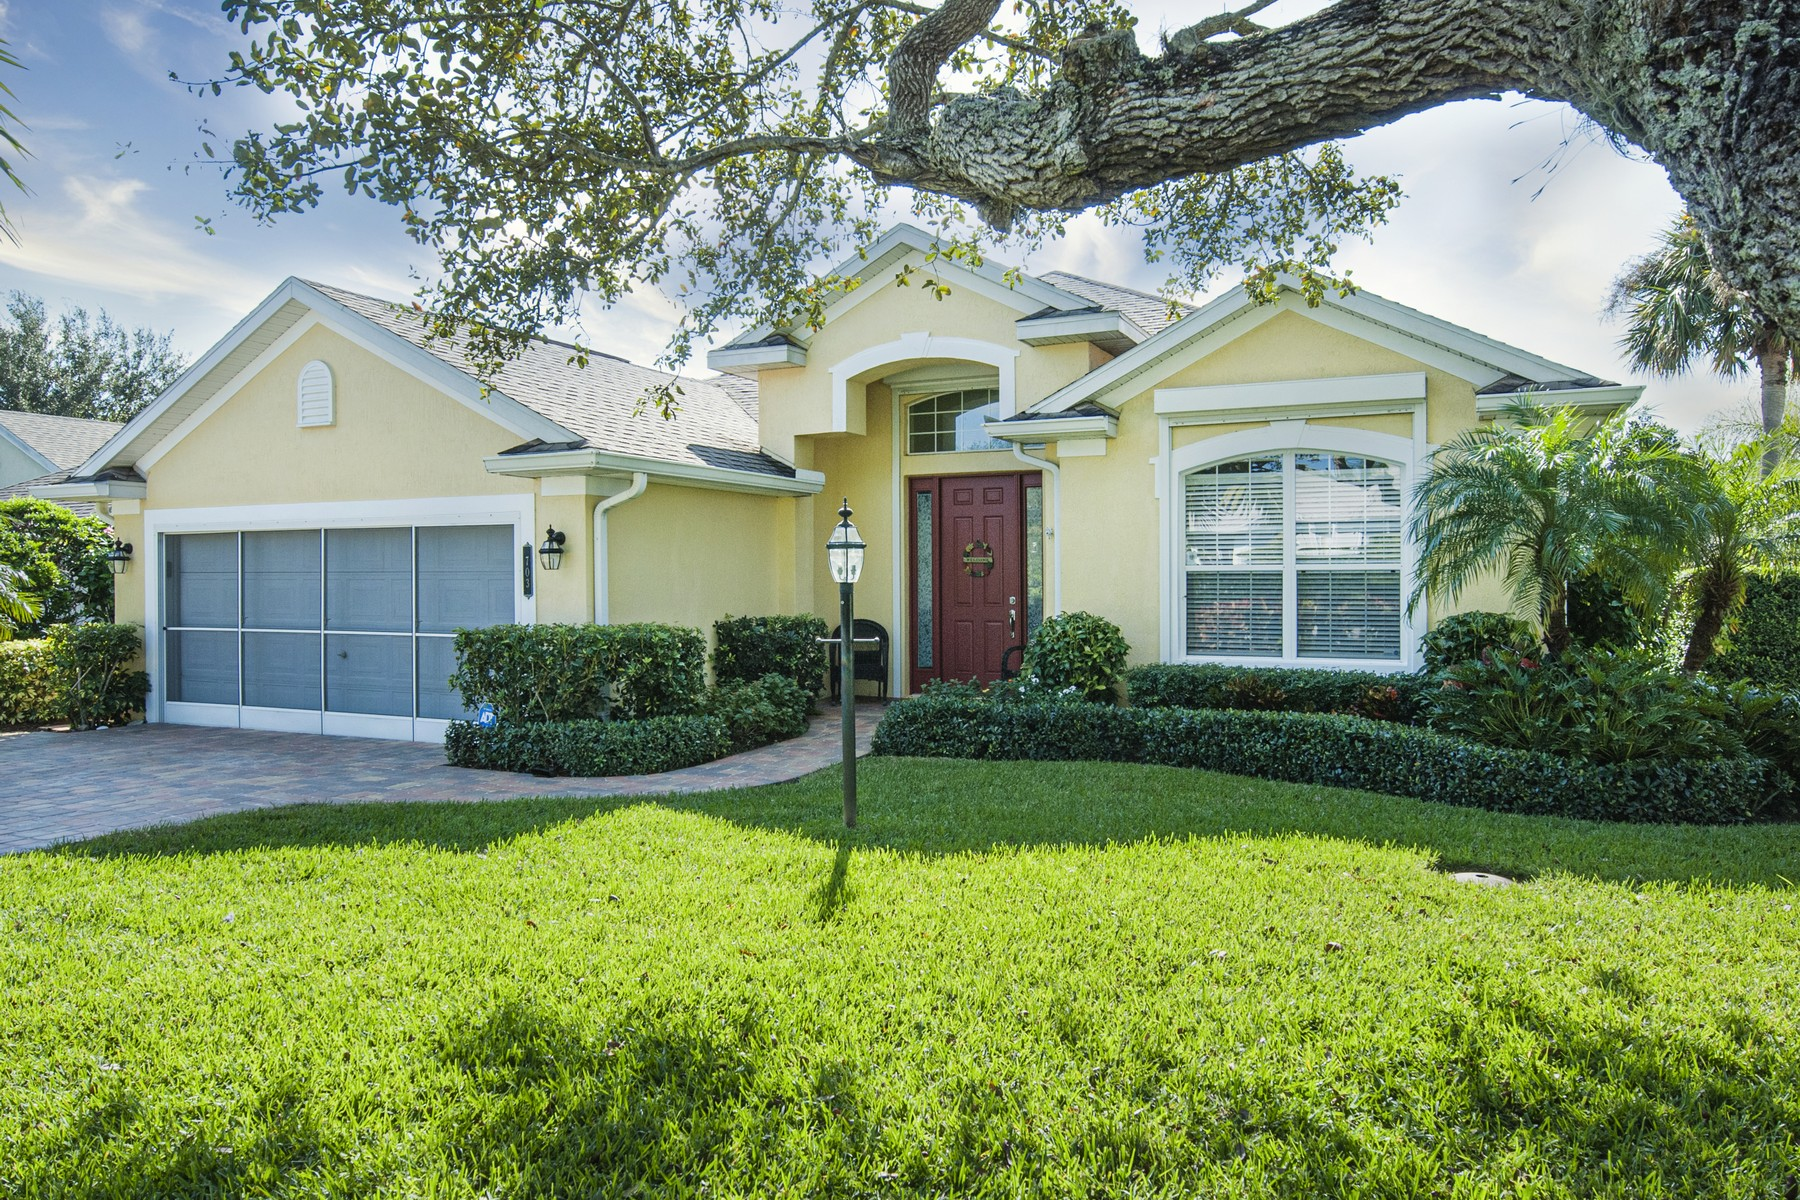 Single Family Homes for Sale at Re-Modeled and Beautiful! 703 Brush Foot Drive Sebastian, Florida 32958 United States